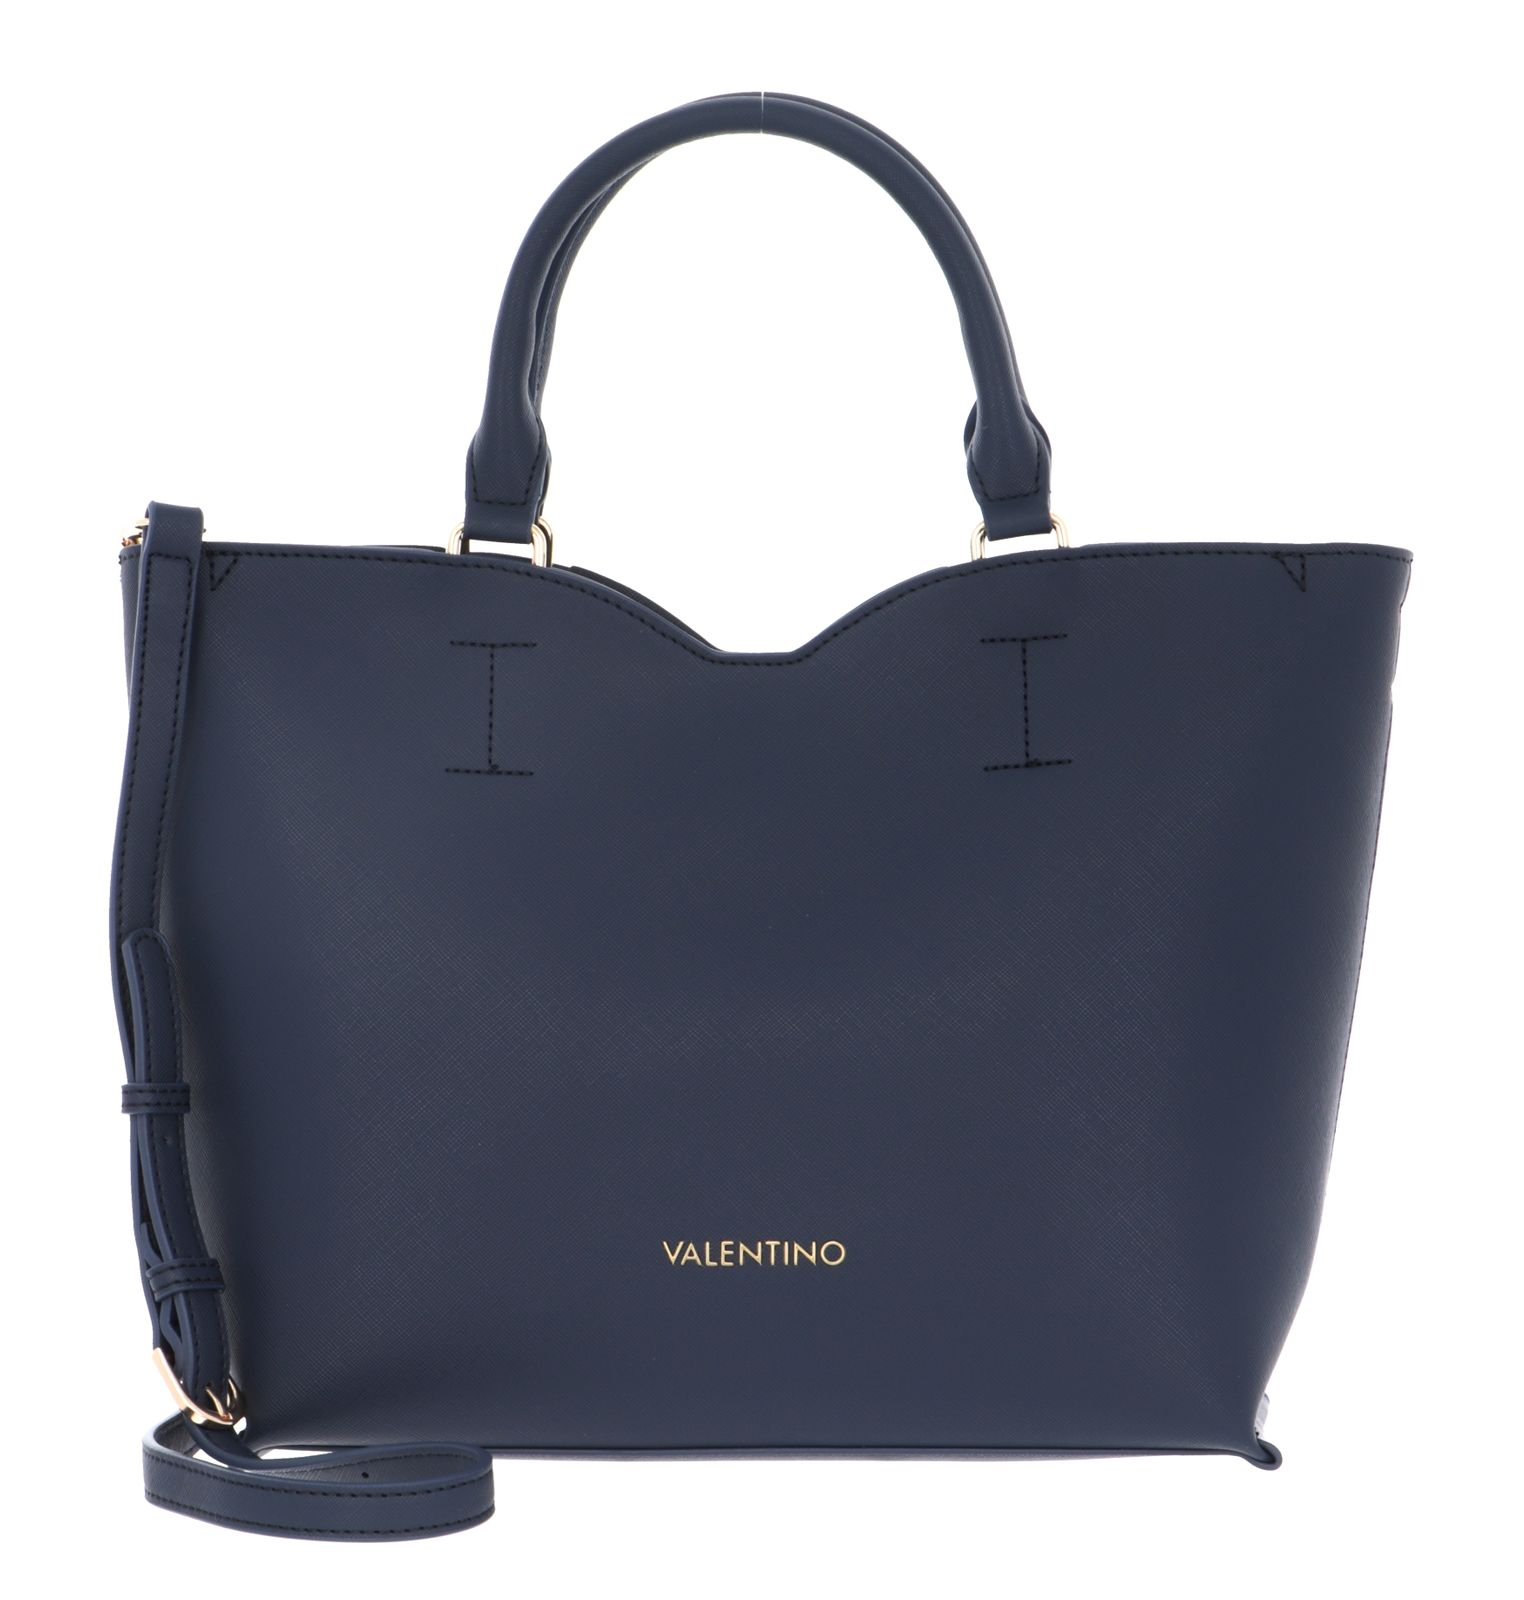 VALENTINO BAGS Page Shopping Bag Navy   Buy bags, purses ...